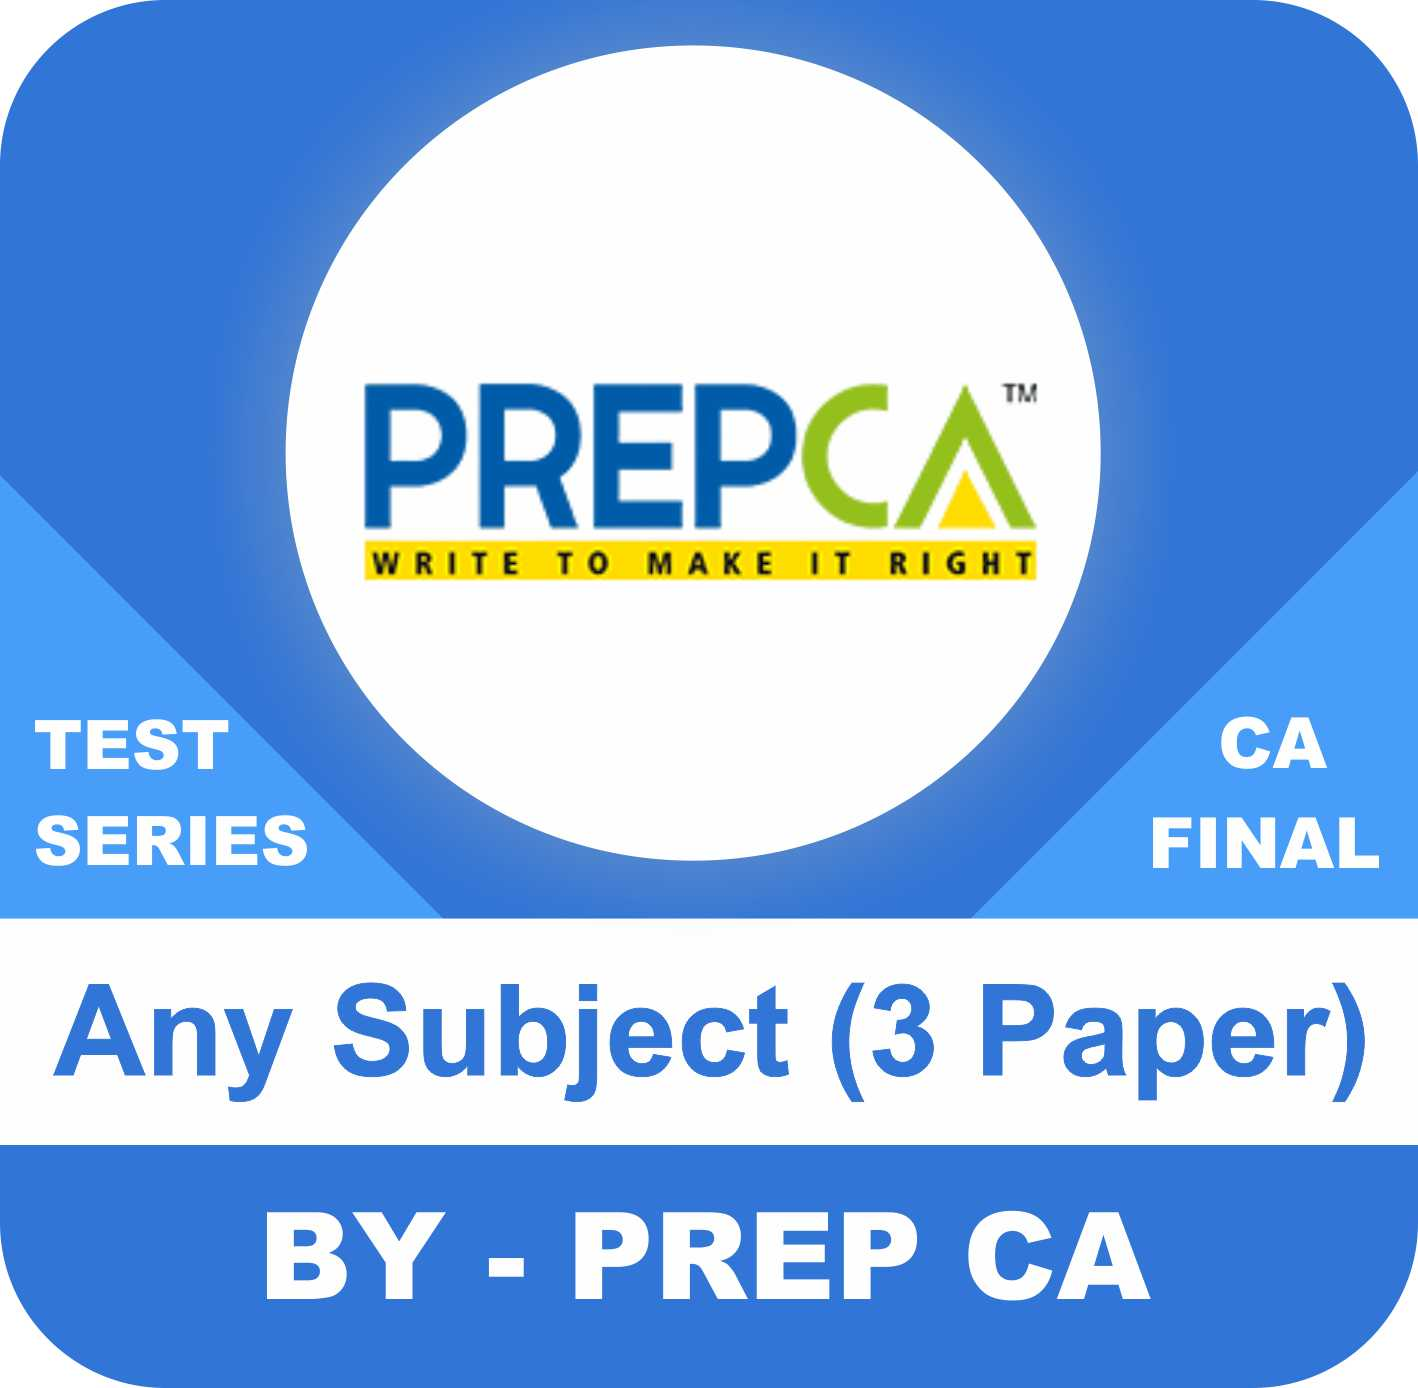 (3 Papers) Any One Subject Test Series In Premium Plus Program